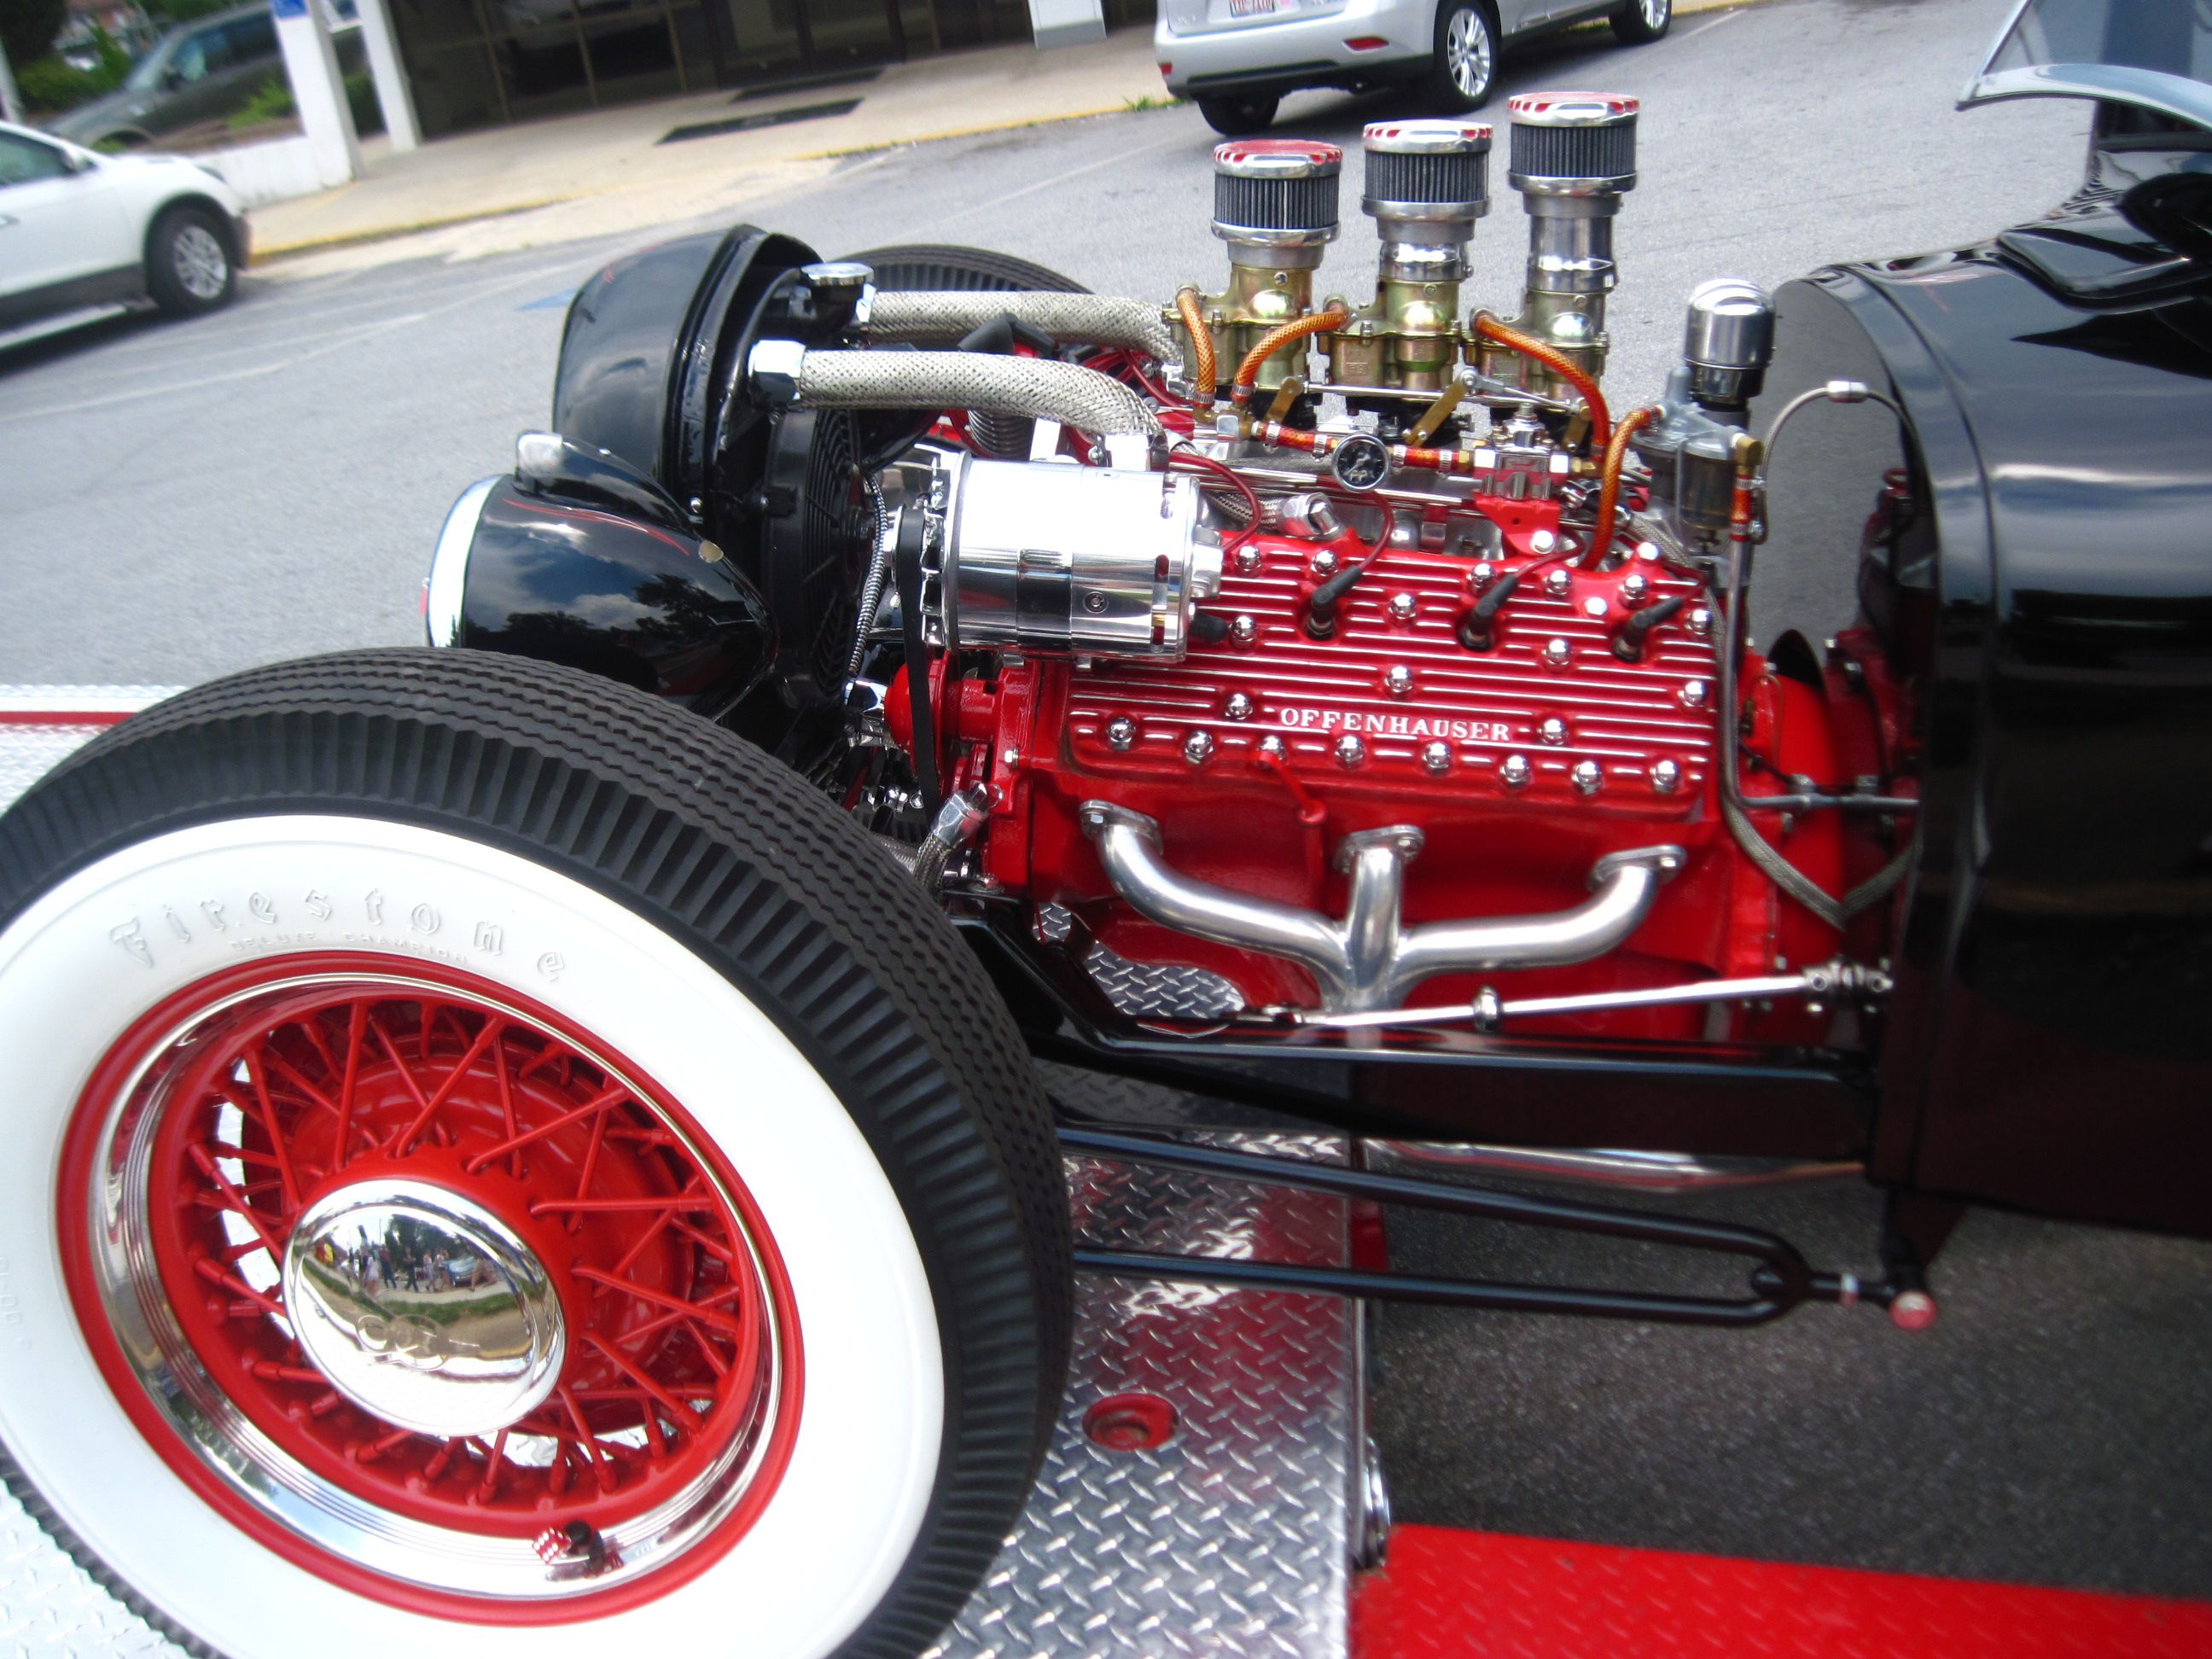 Offenhauser heads on a 34 ford with a flathead v8 in times of yore